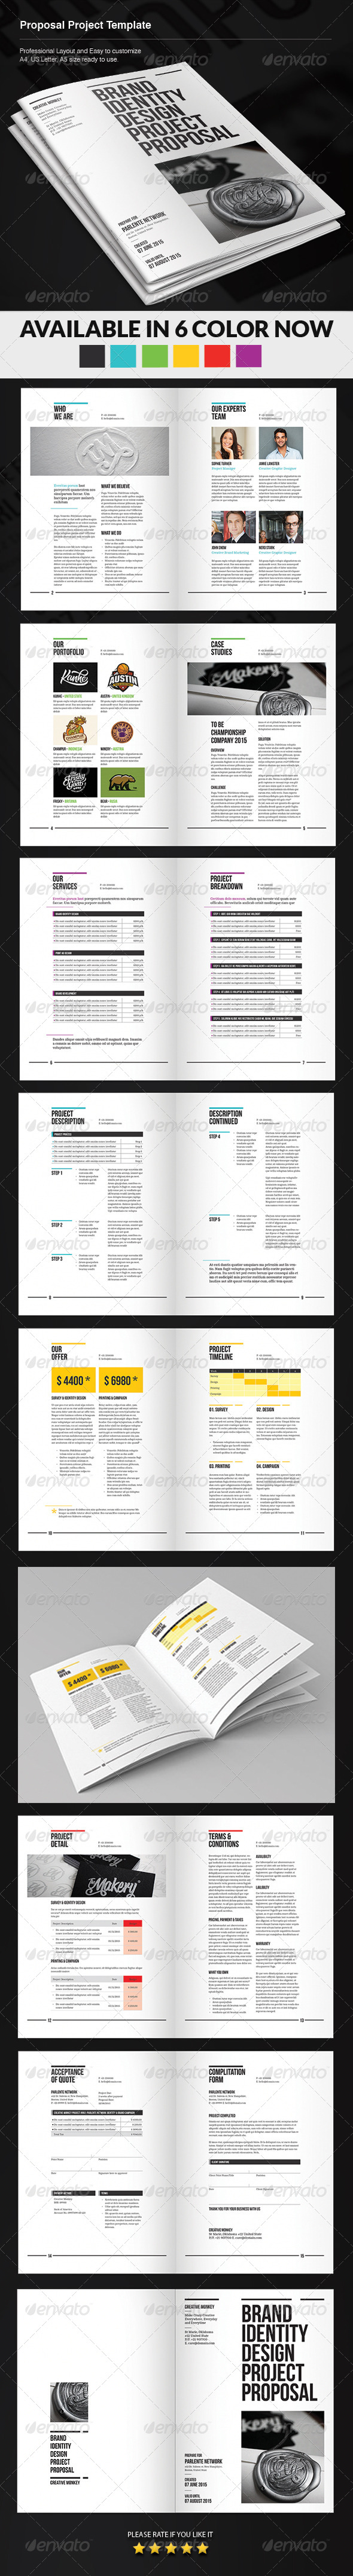 Proposal & Invoice Template